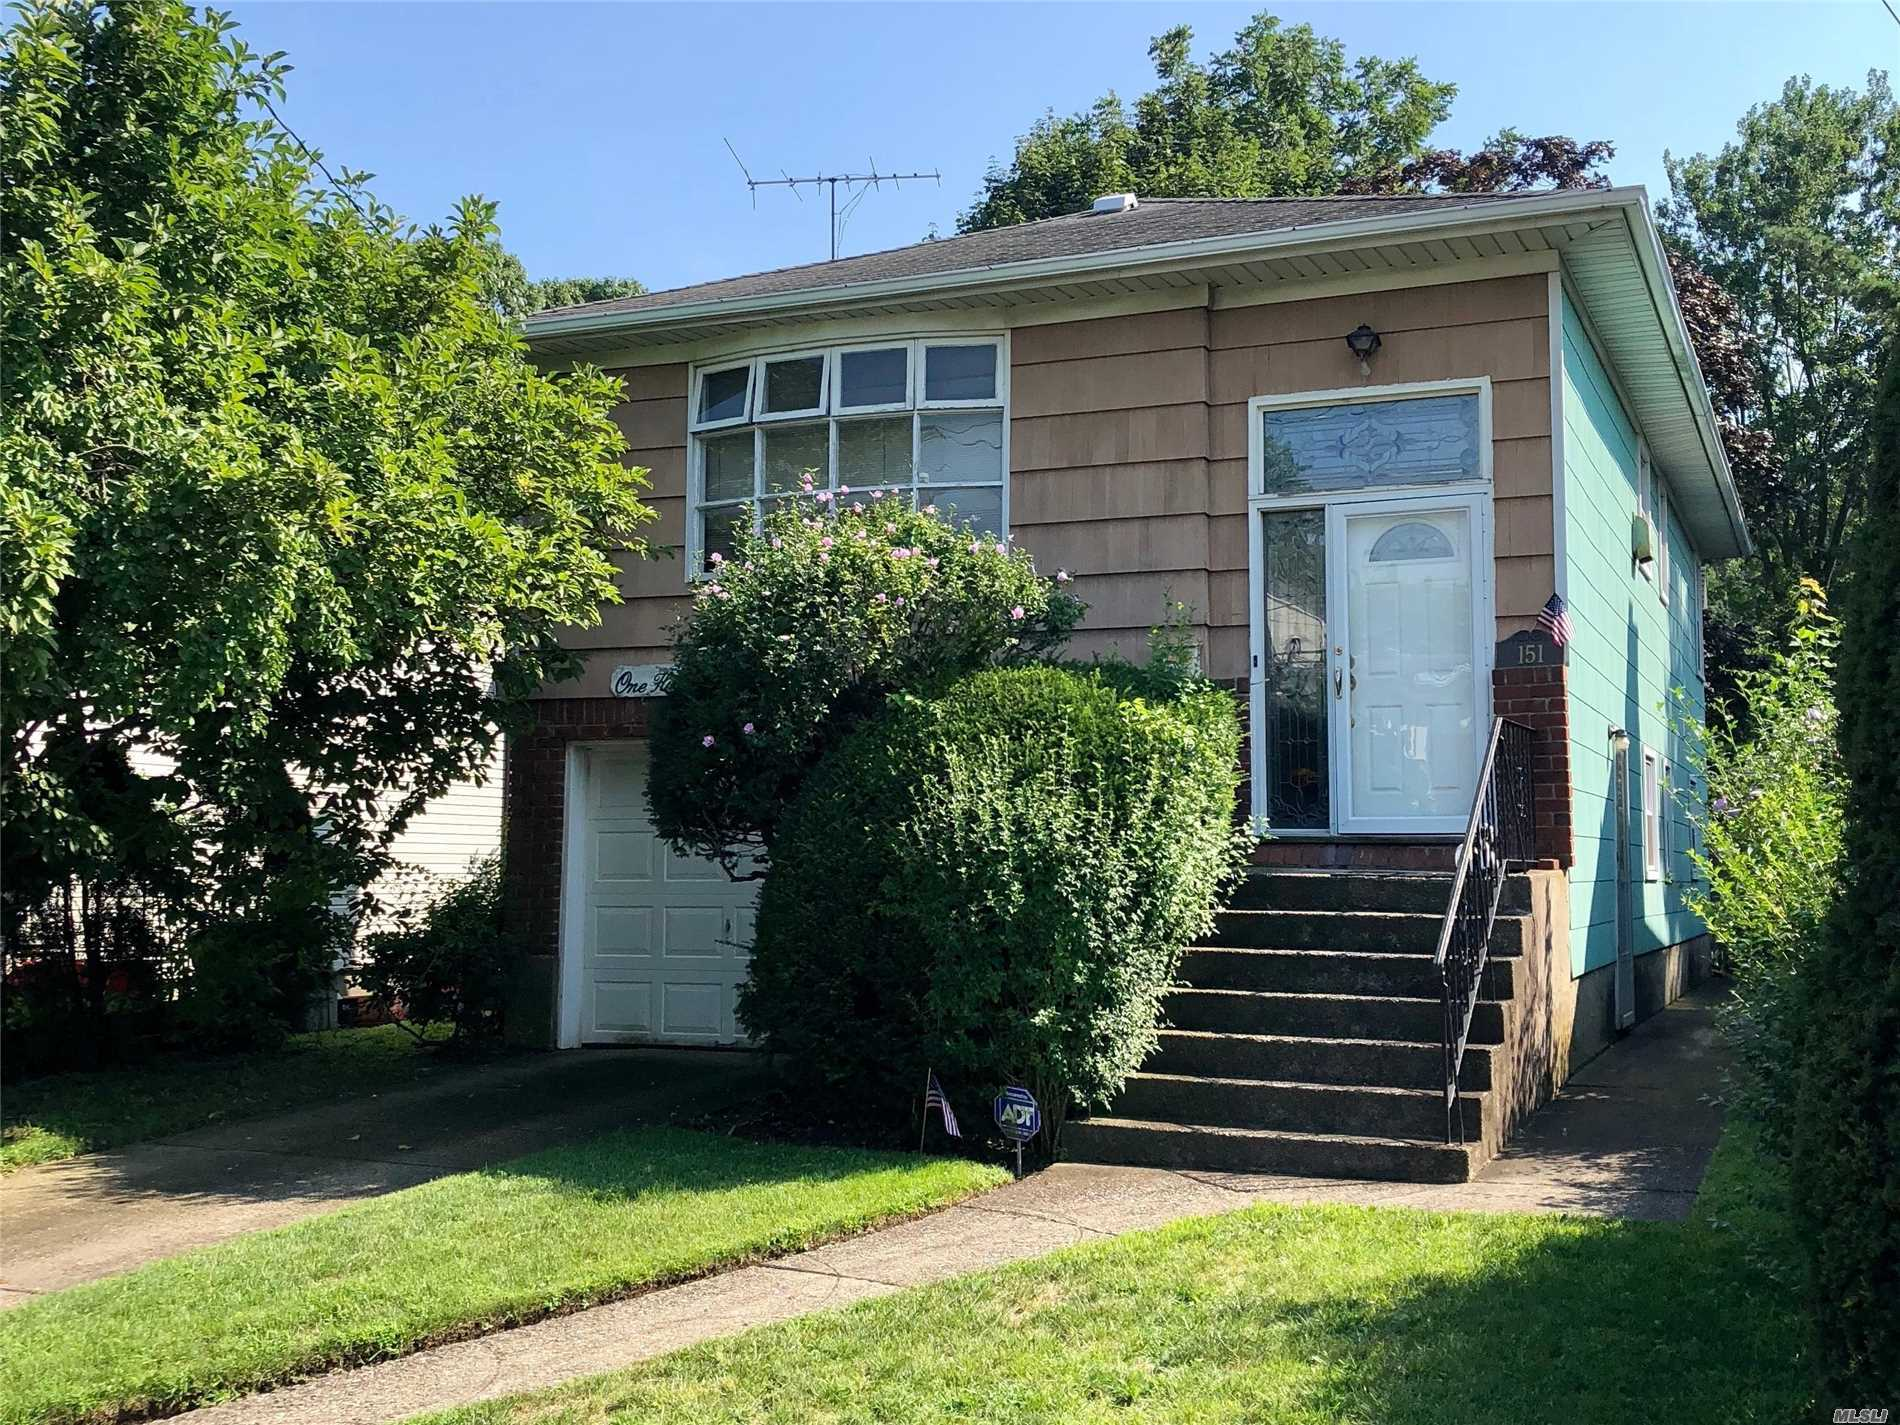 Living Room, Dining Area -Eat In Kitchen, Full Bath, Very Large Family Room, Down Stairs, Half-Bath, Laundry, Garage. Easy To Show ; Close To Parkway, Walking Distance To Lirr , Local Bus's, Quaint Village Area Of Malverne.